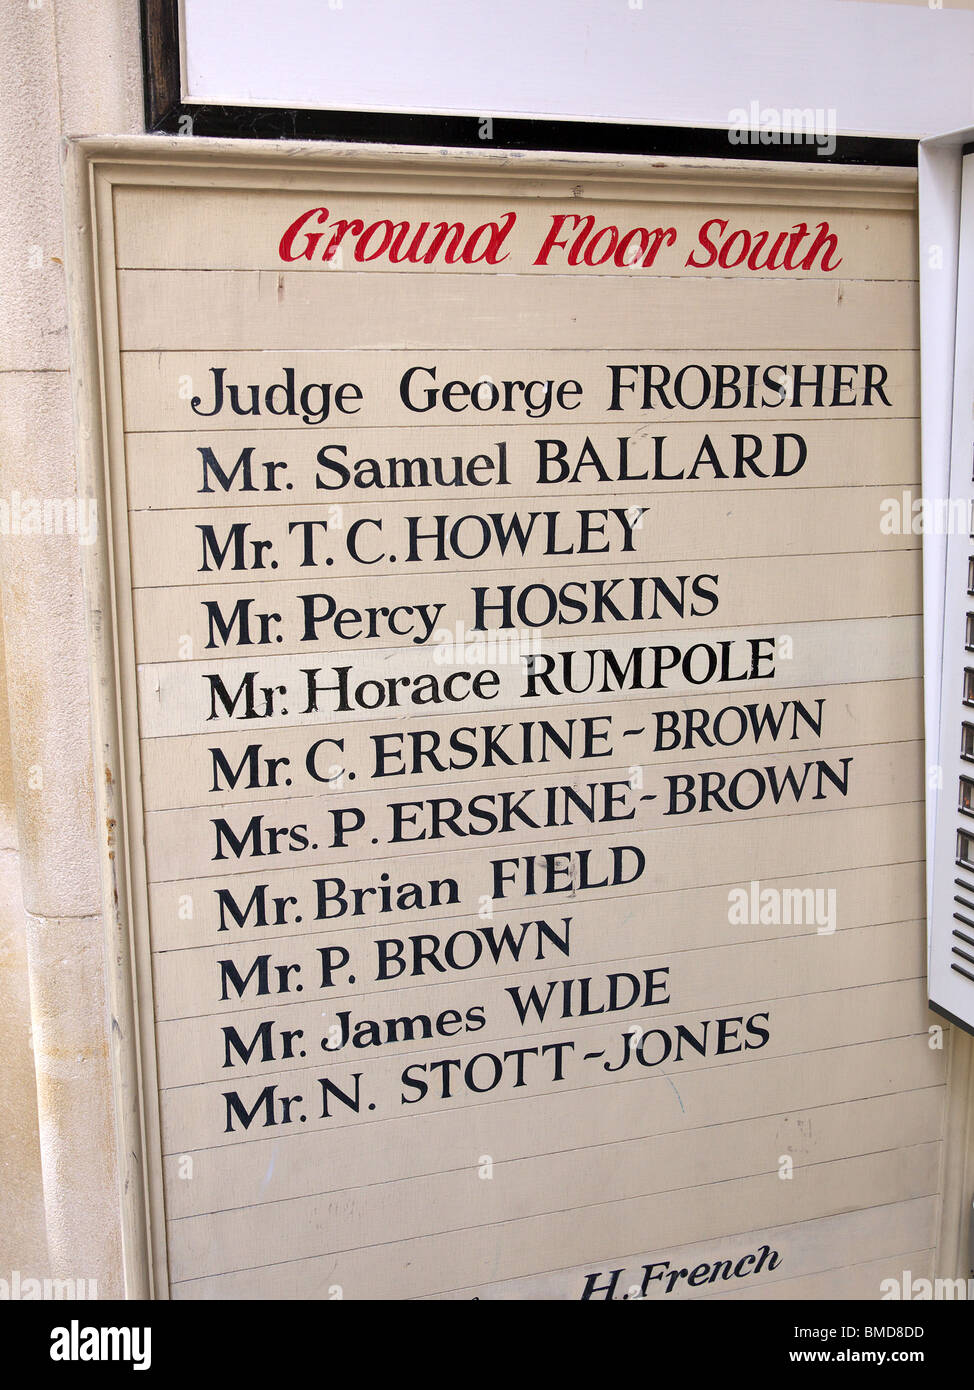 List of famous legal names outside a London barristers' chambers - Stock Image